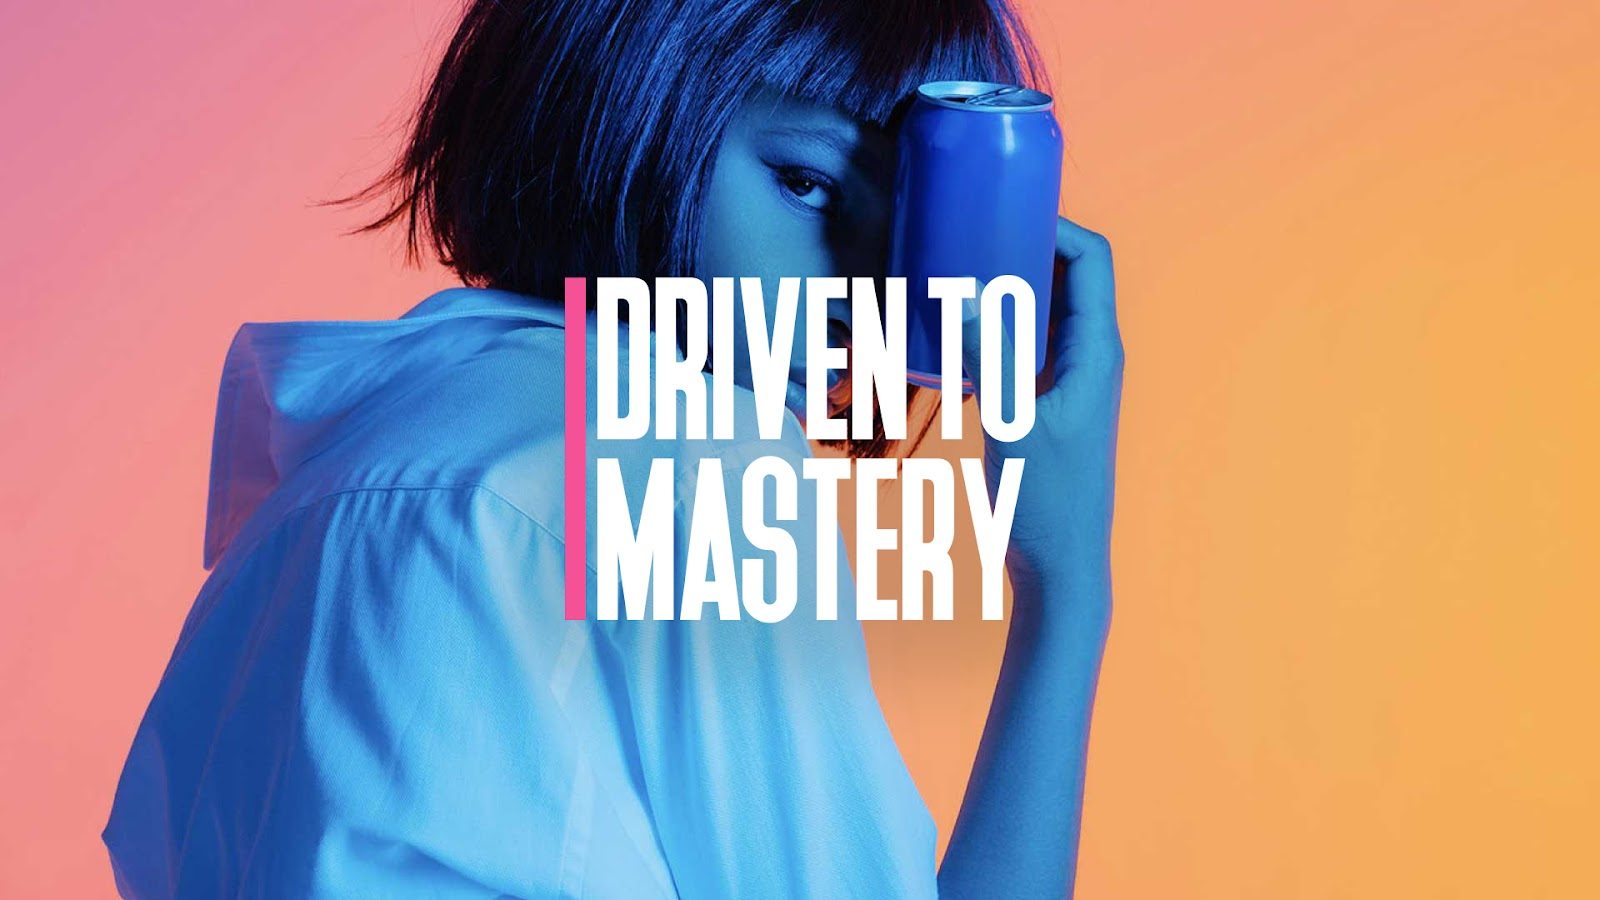 Woman Holding Can labeled Driven to Mastery